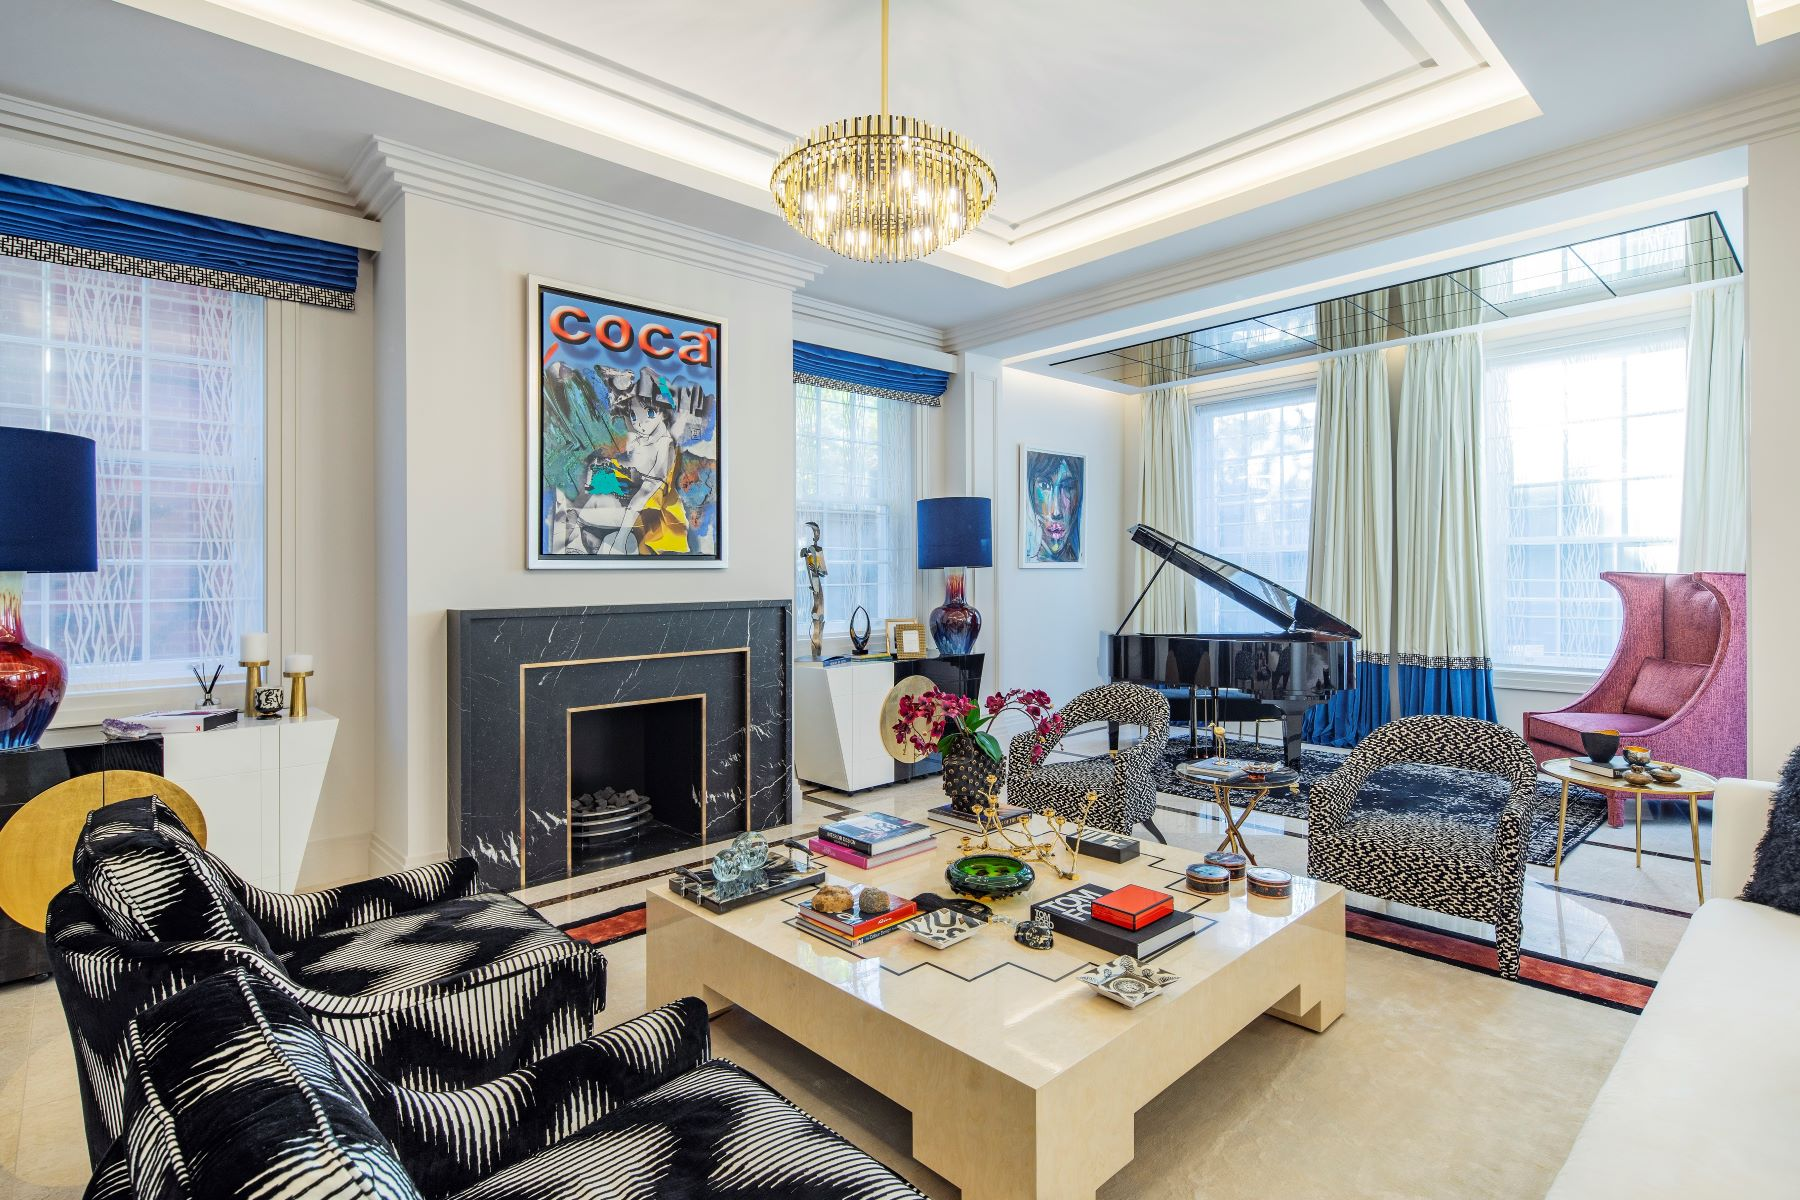 Additional photo for property listing at Avenue Road,St John's Wood, NW8 87 Avenue Road, St. John's Wood Londra, Inghilterra NW8 6JD Regno Unito